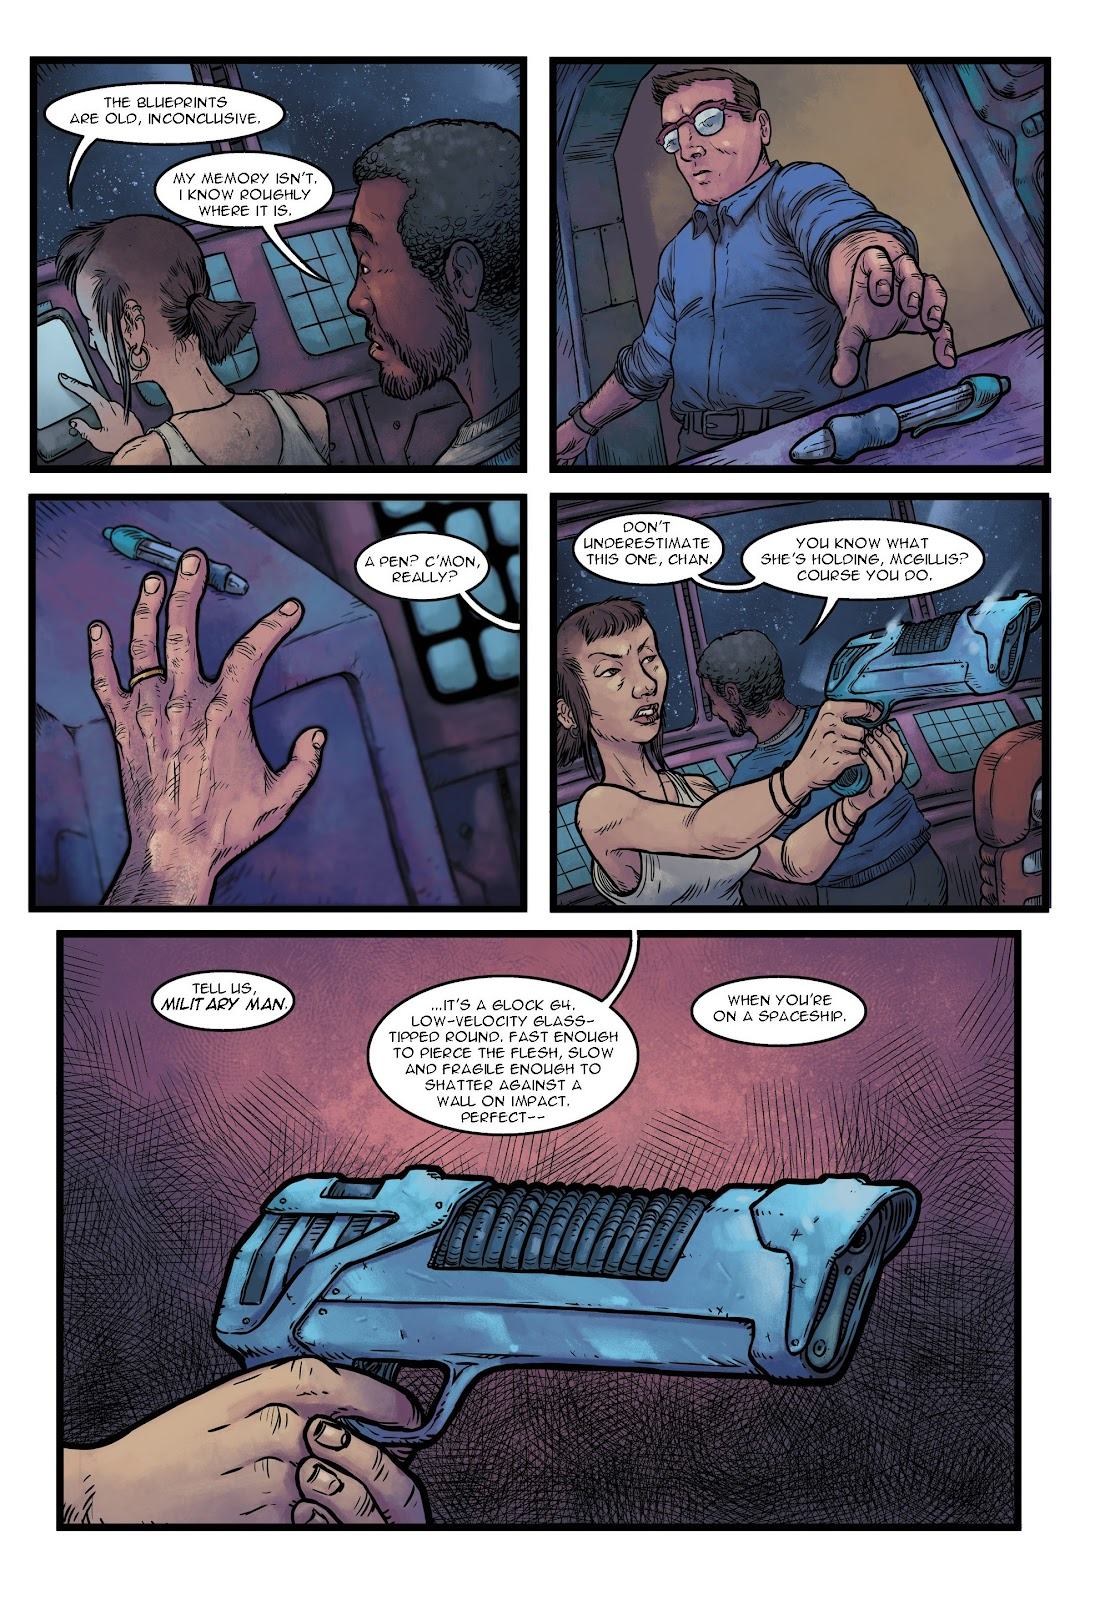 Read online Impossible comic -  Issue # TPB - 30